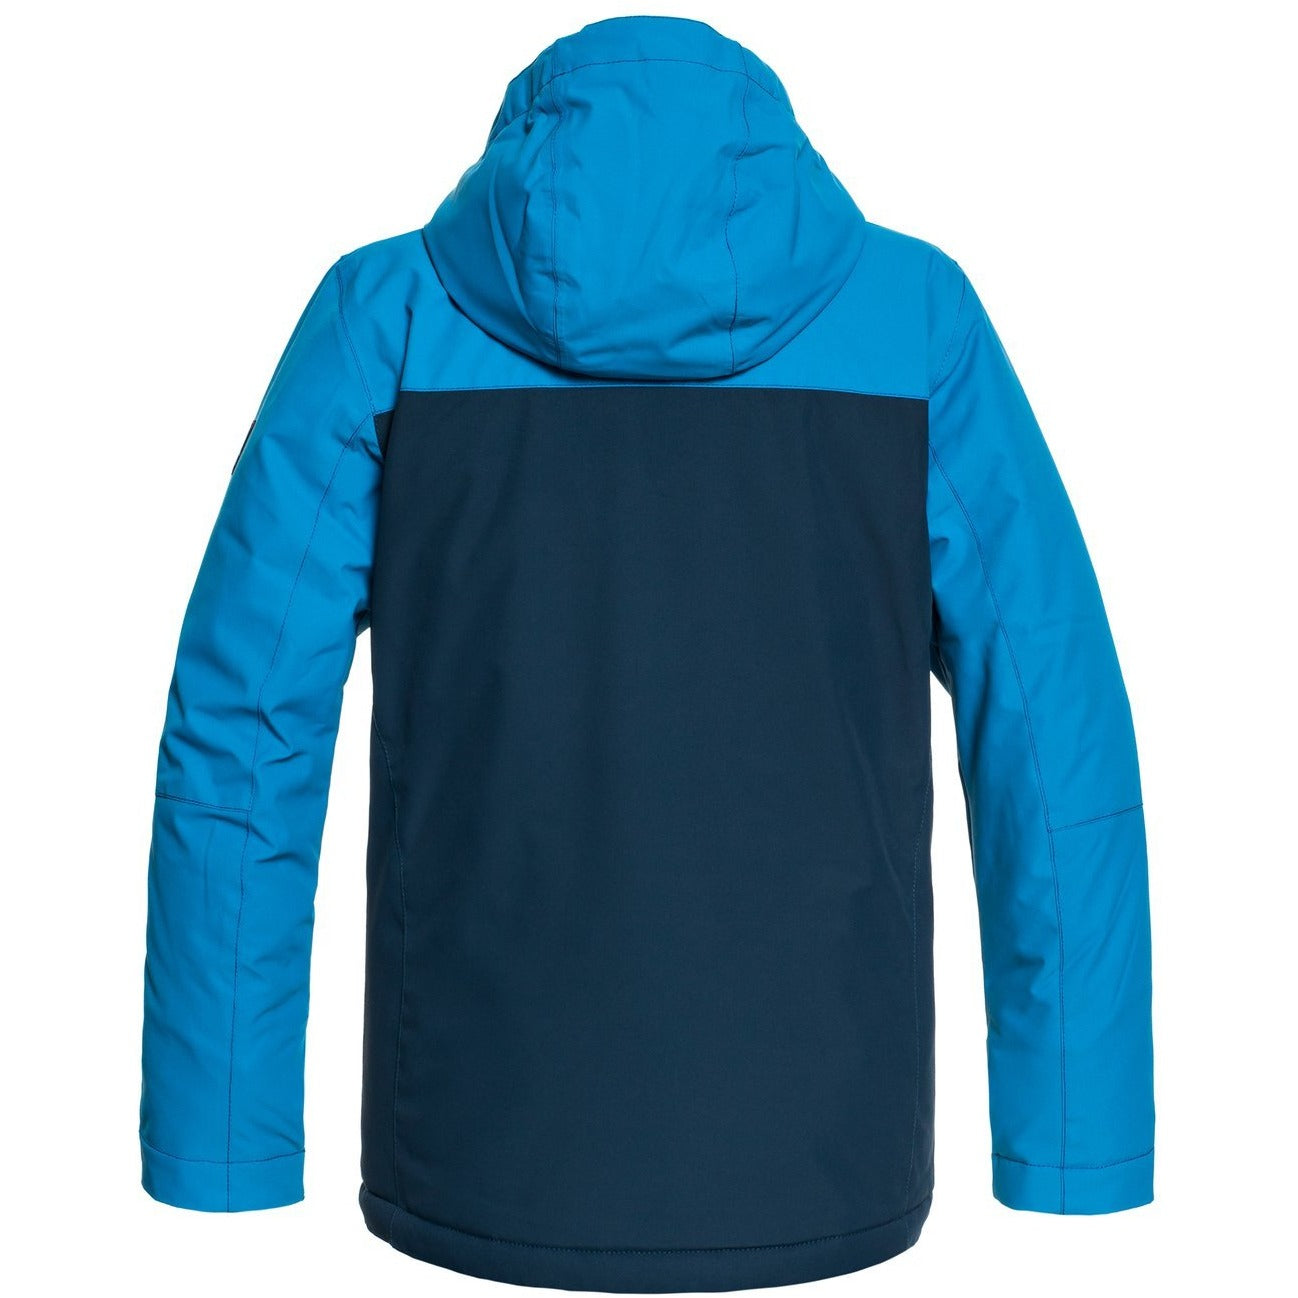 Quiksilver Boy's Mission Snow Jacket - 88 Gear